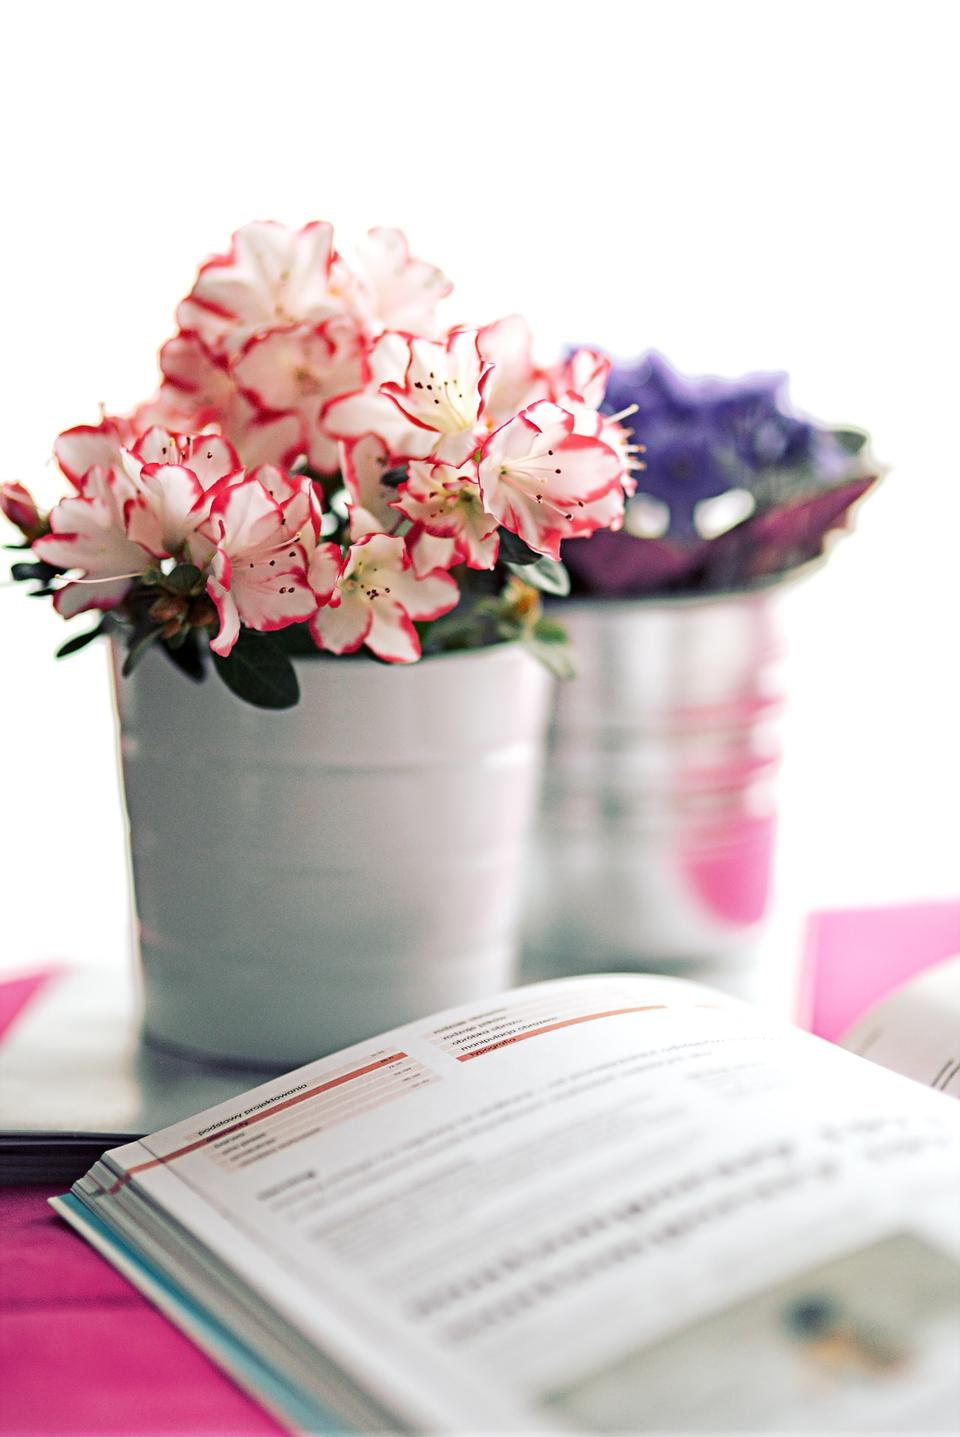 Beautiful fresh spring flowers with stack of books